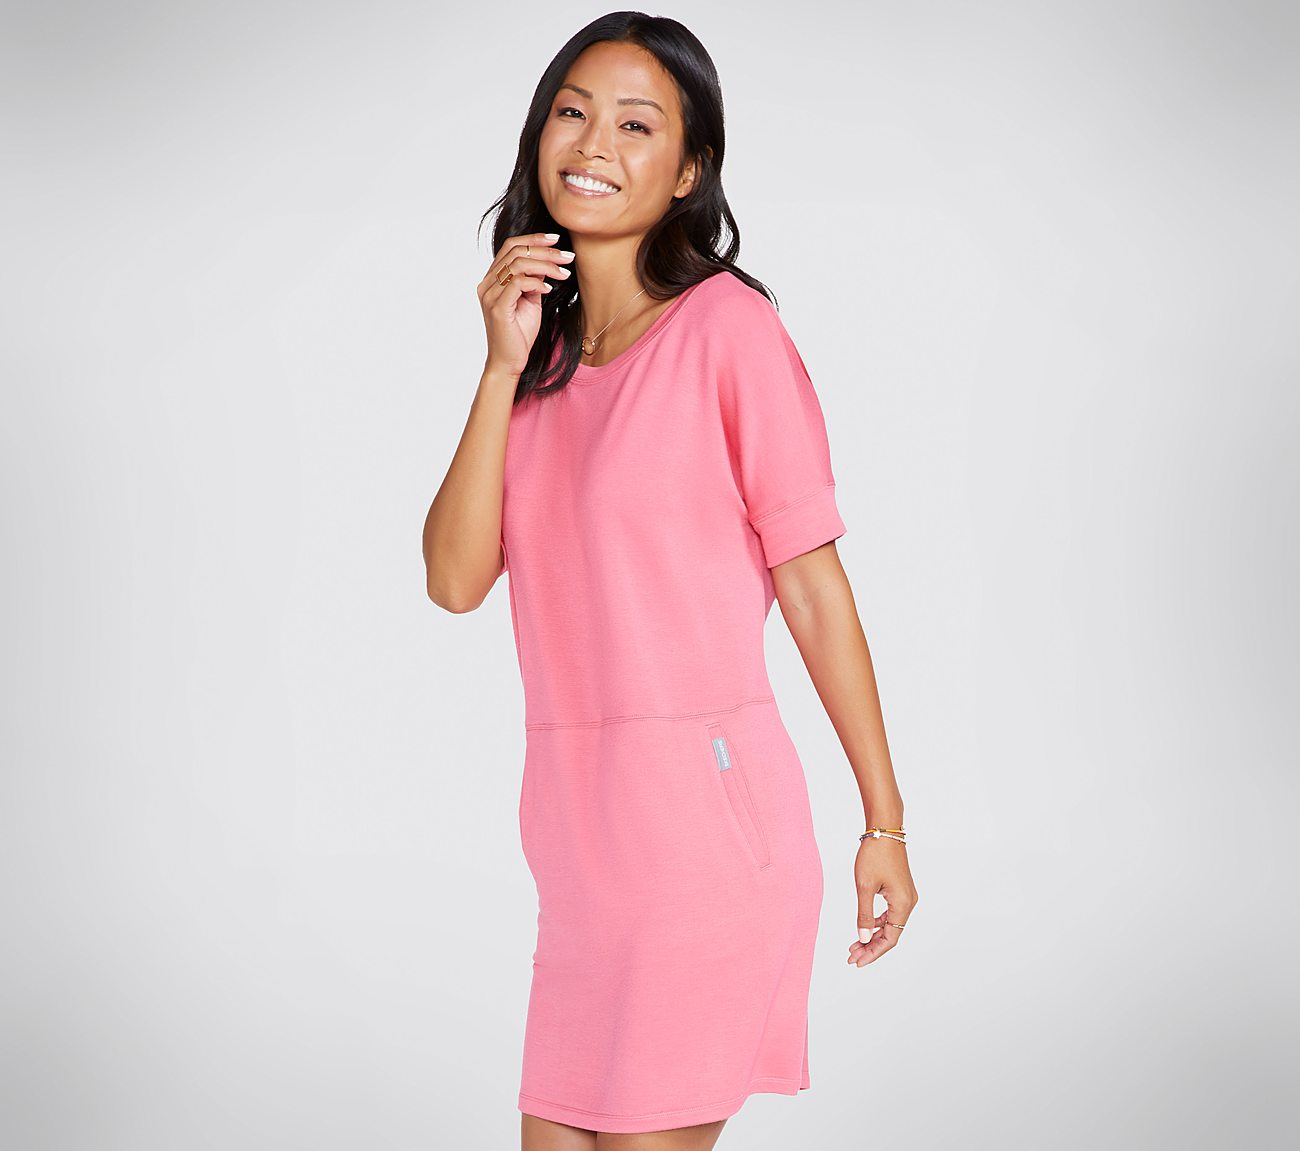 Skechers Apparel One and Done Dress